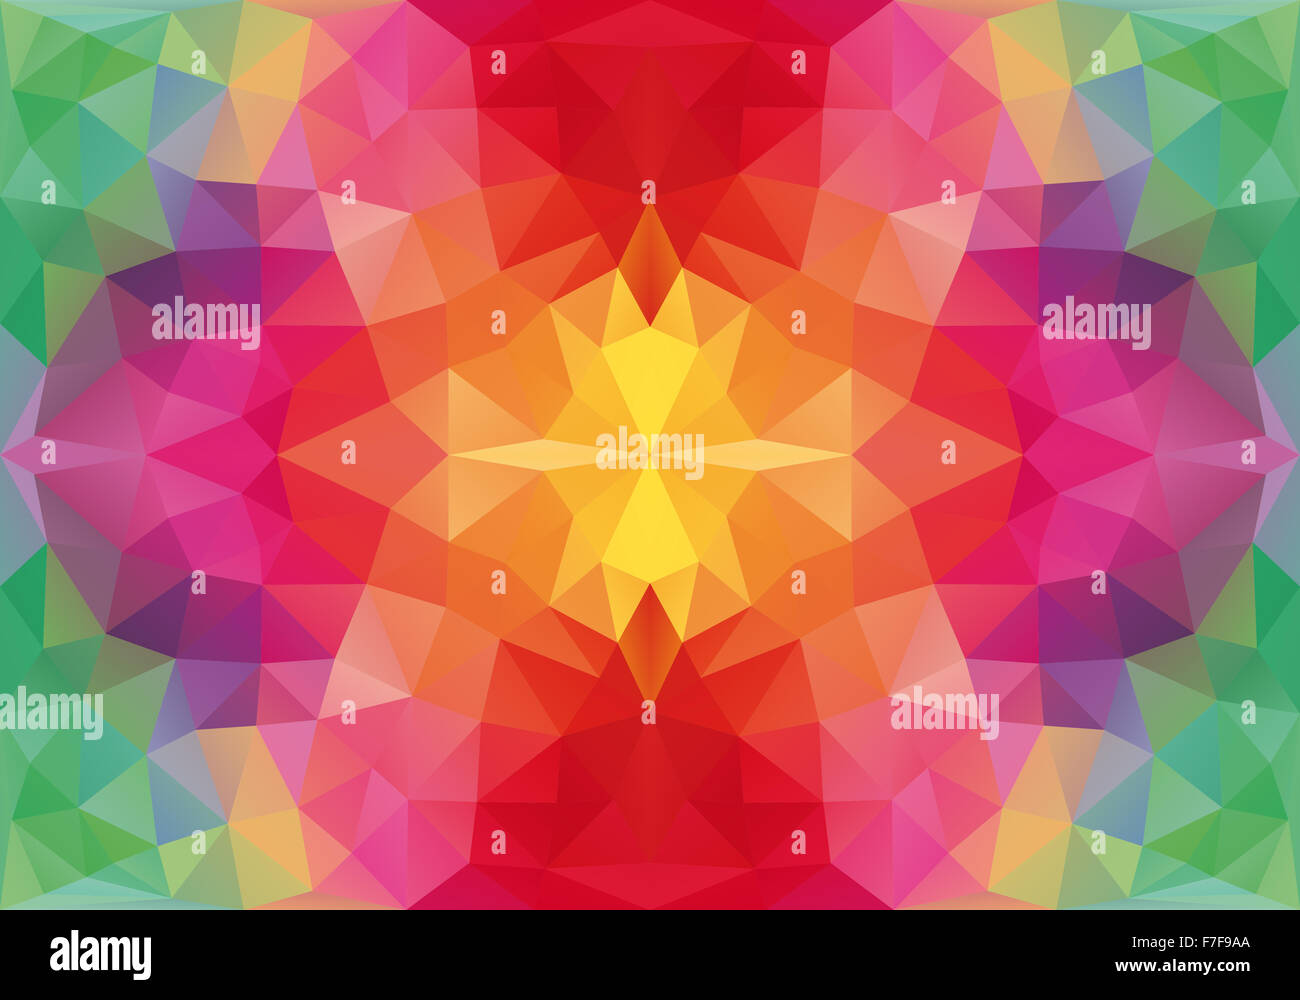 abstract floral geometric polygon pattern, seamless vector background - Stock Image